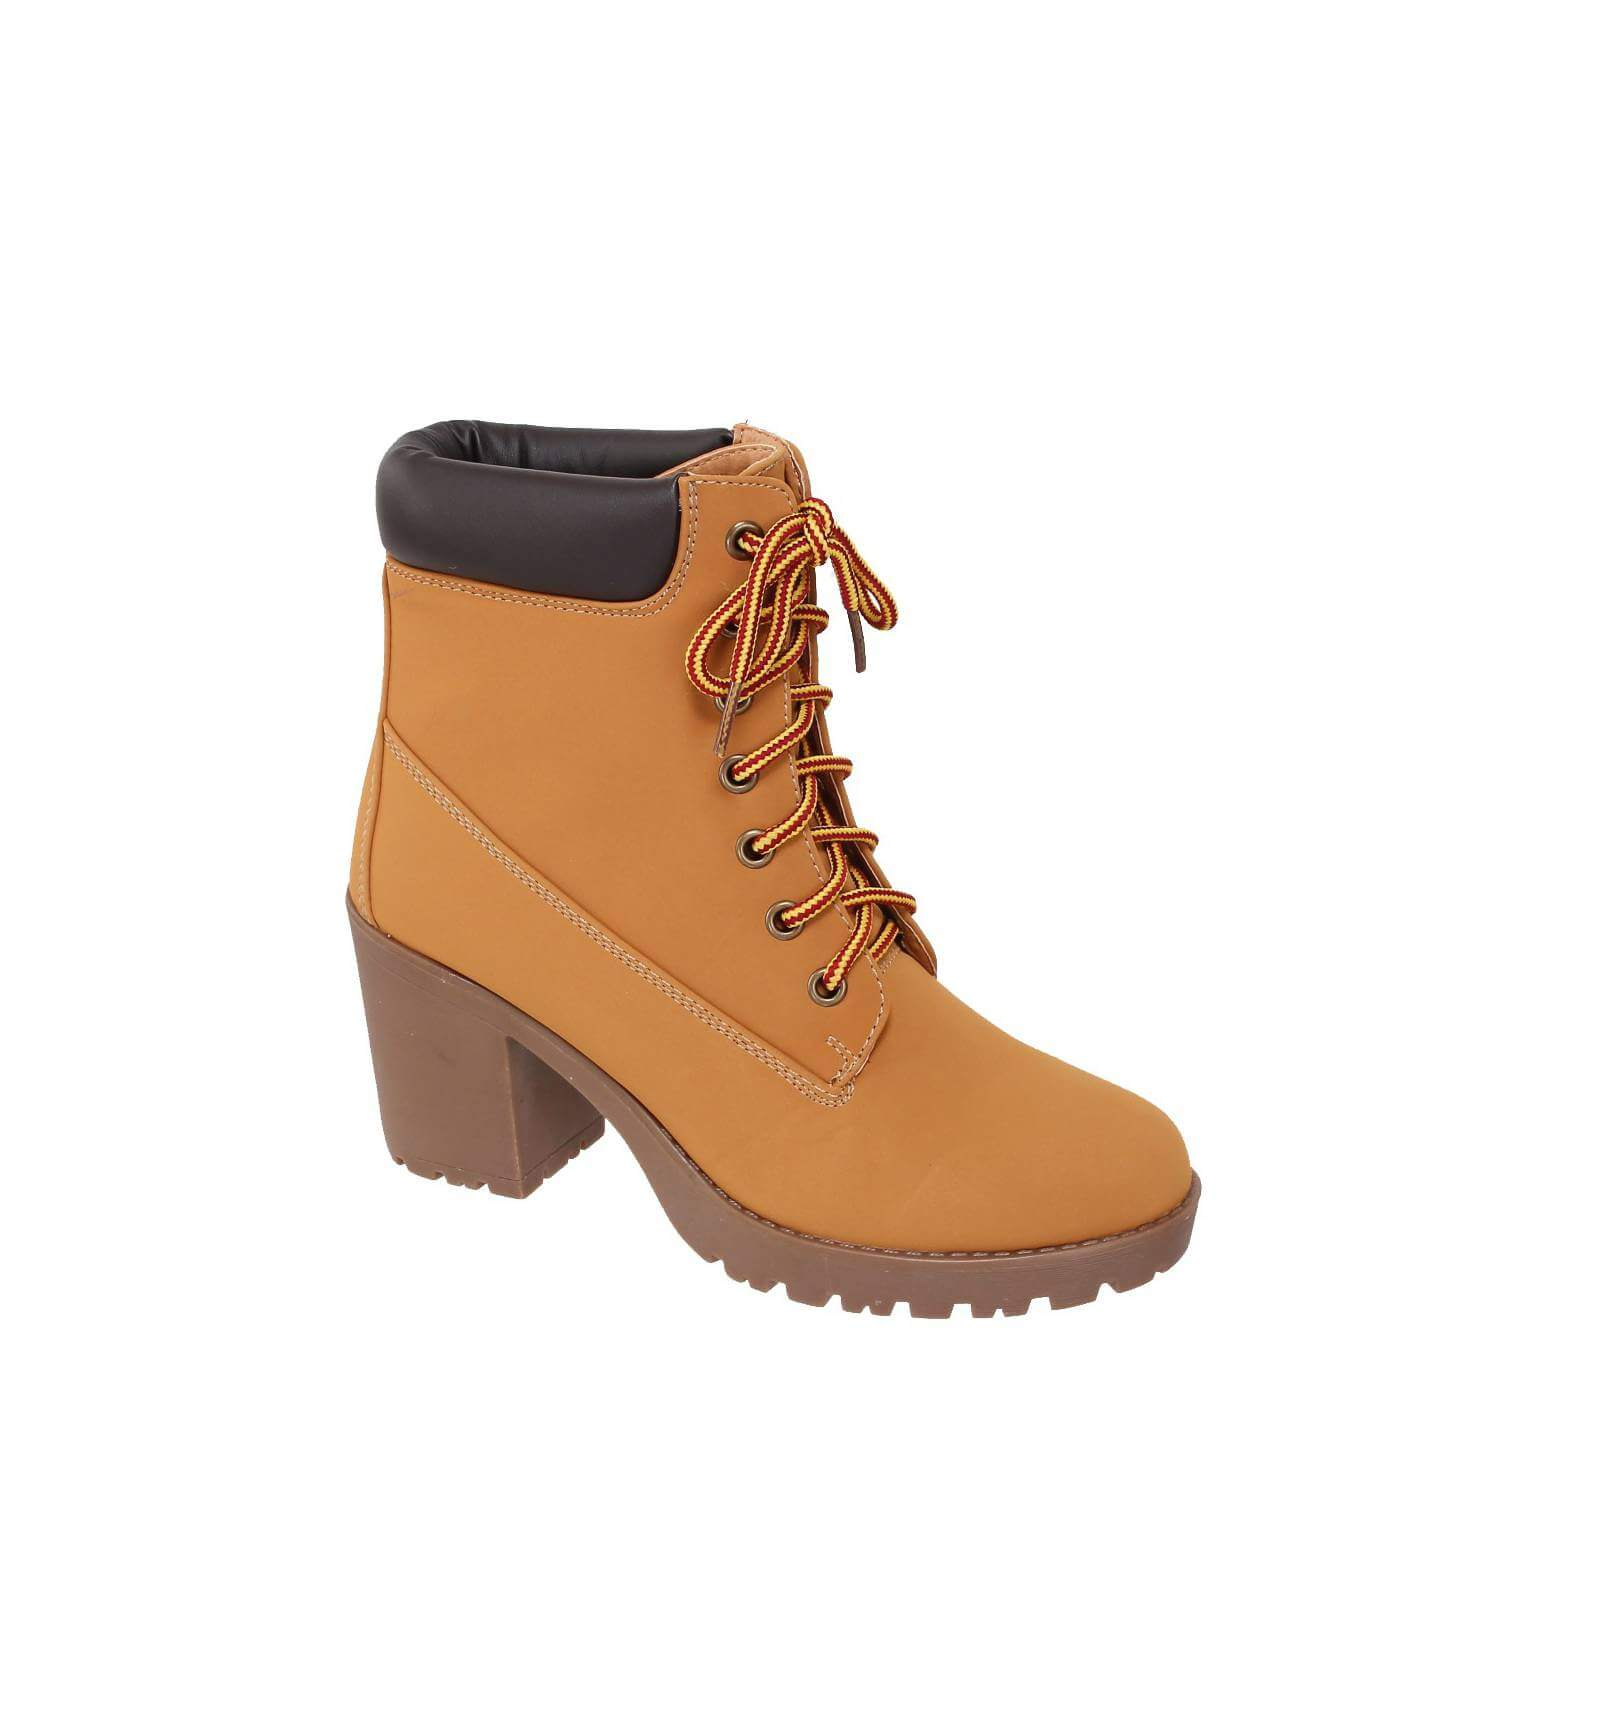 Souvent Bottines talon femme & à lacet: couleur Camel IRIS HQ34